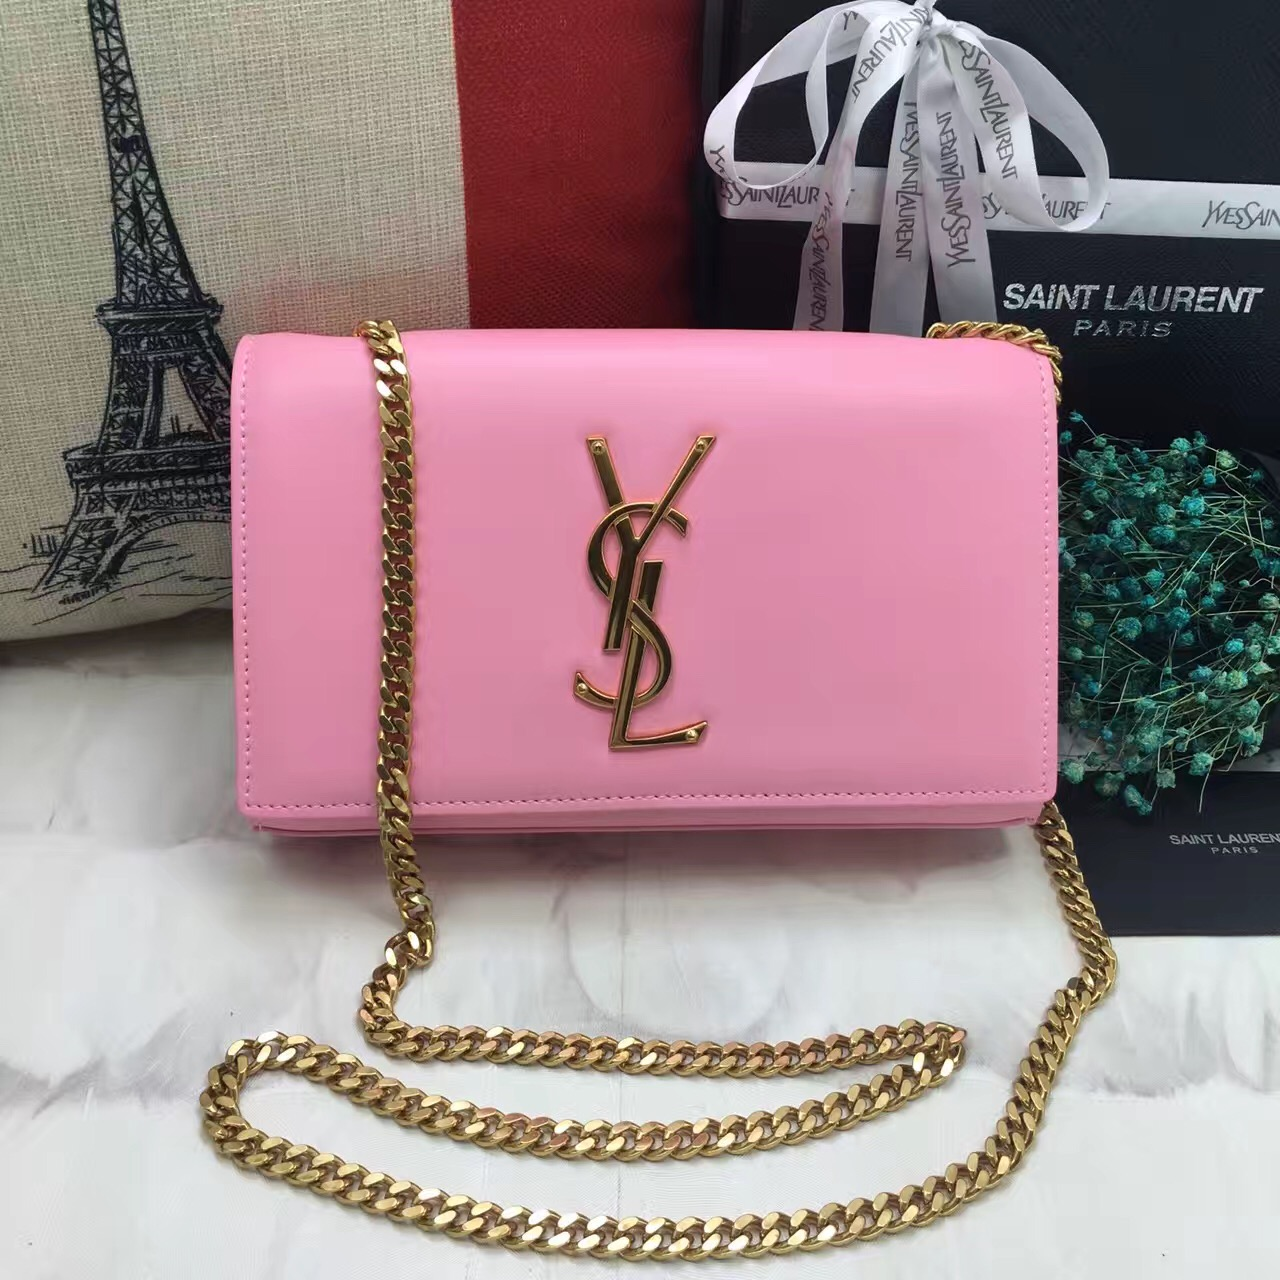 YSL Smooth Leather Chain Bag 22cm Pink